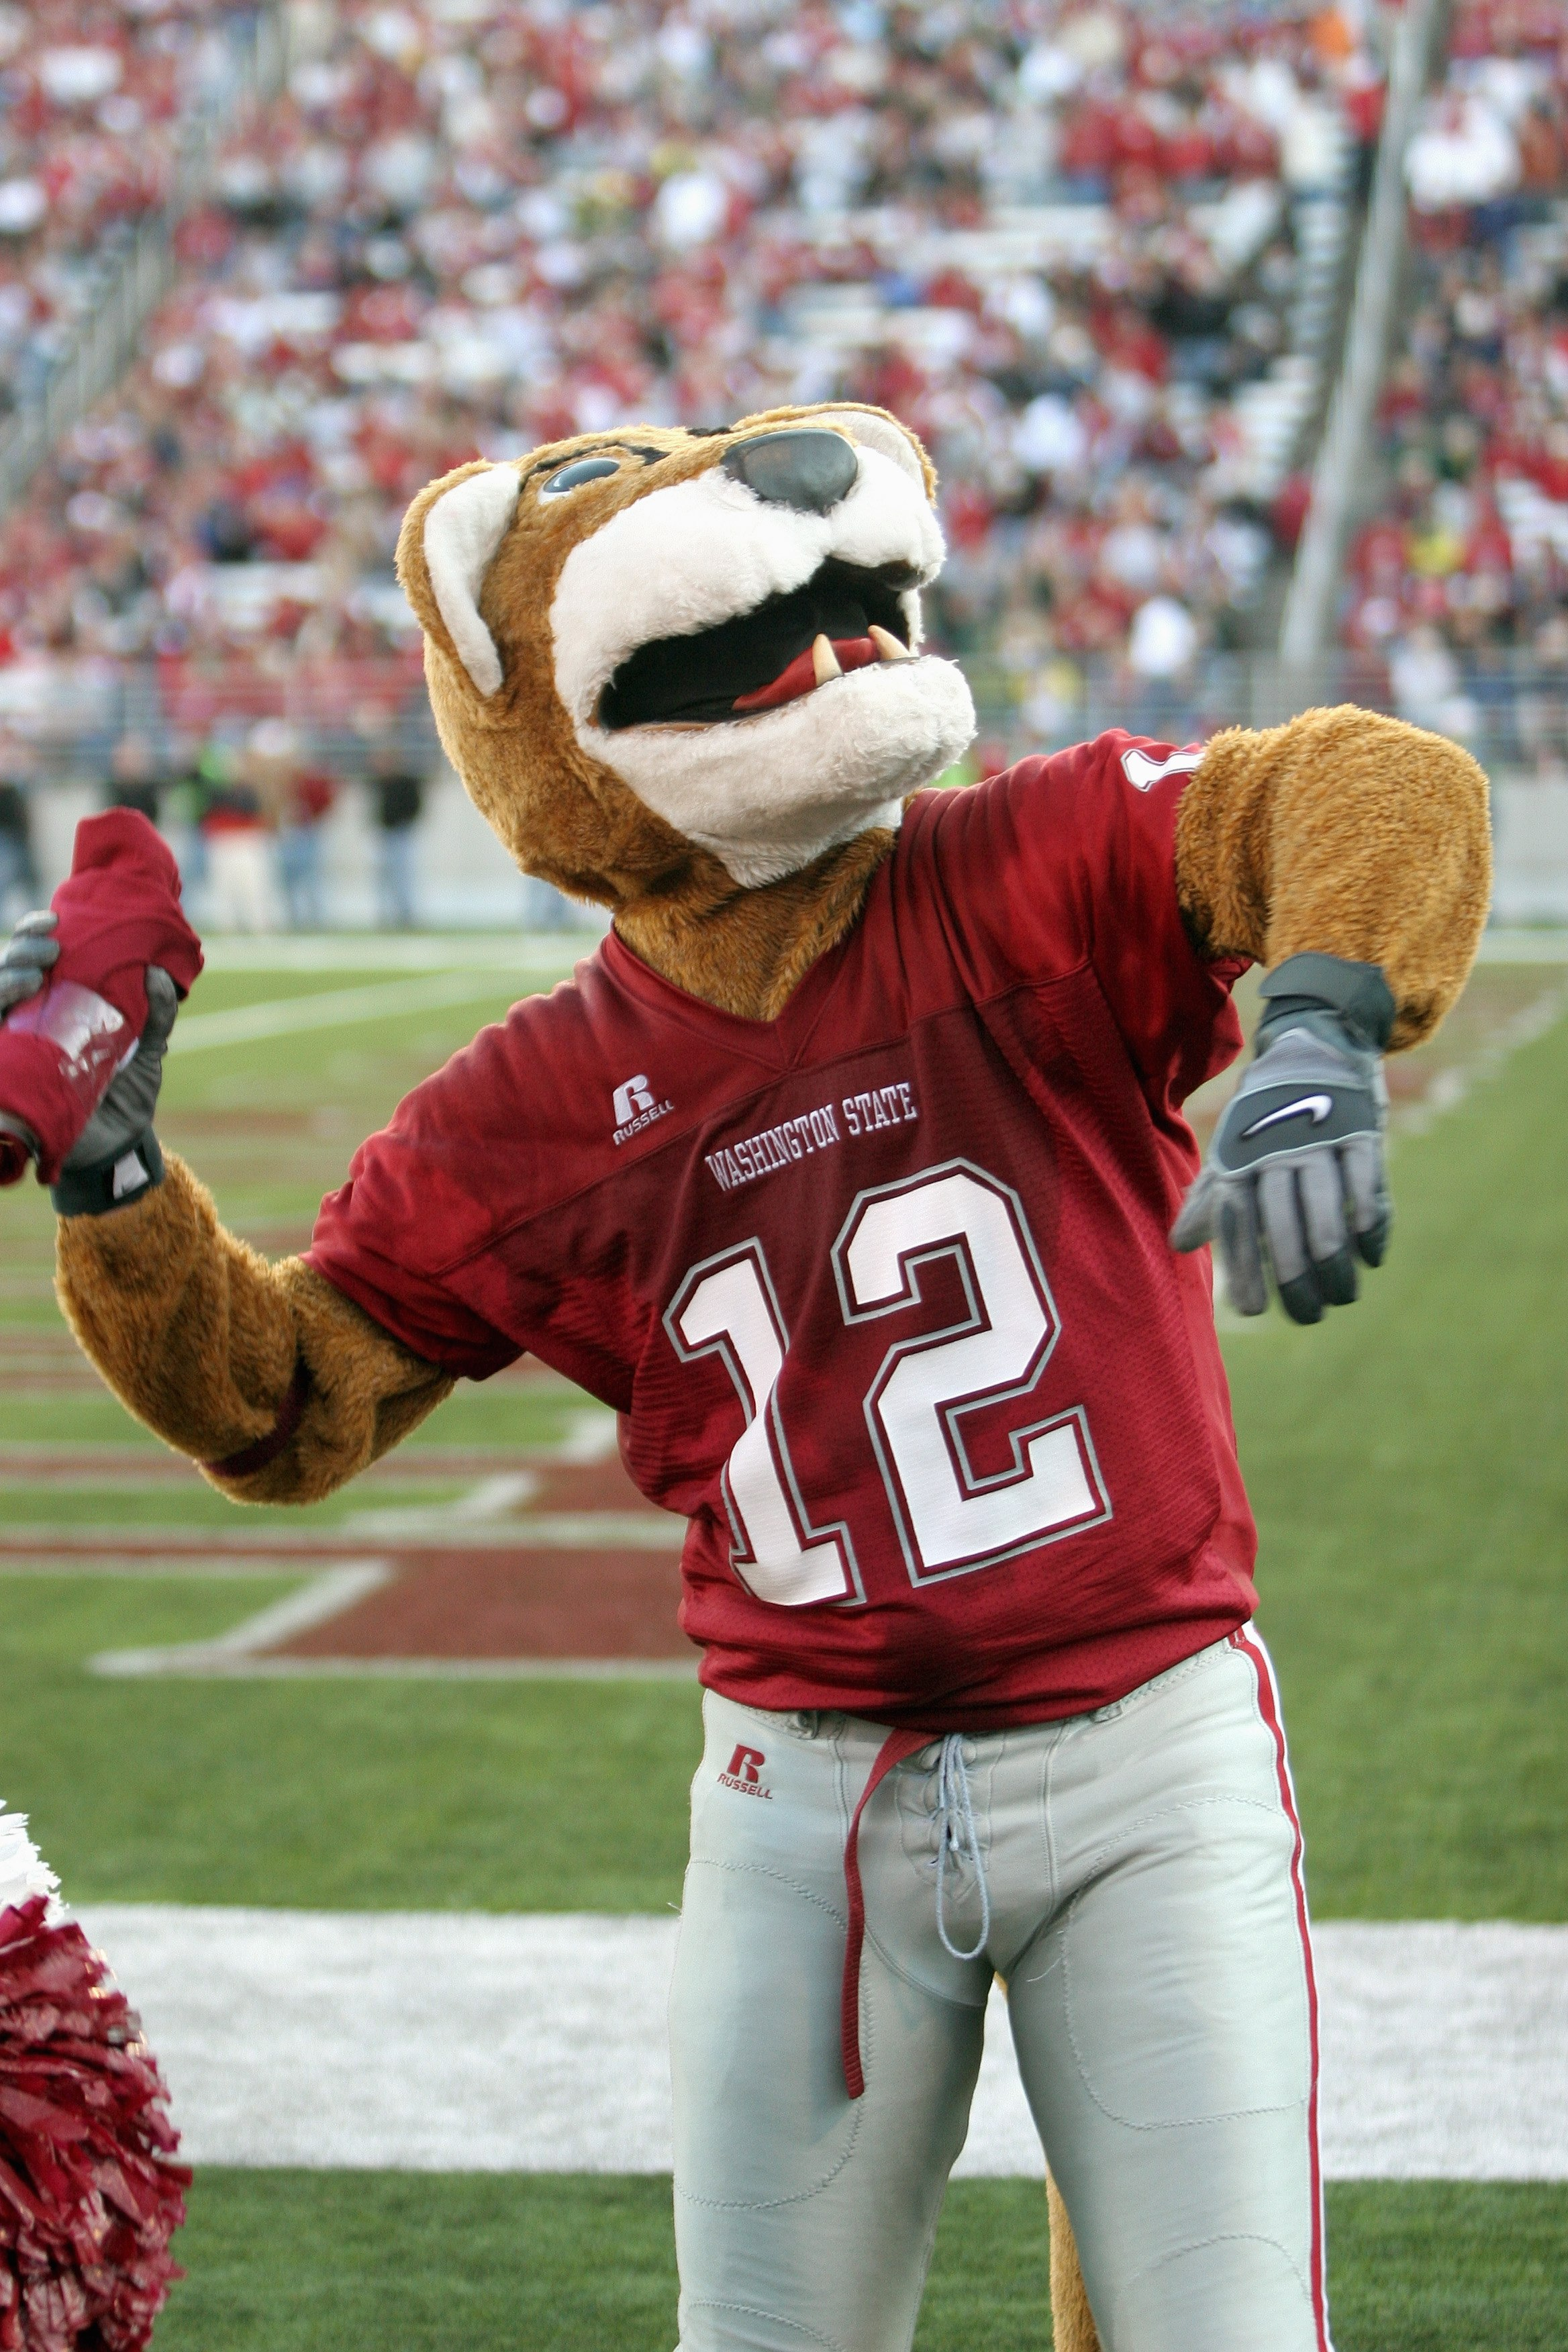 PULLMAN, WA - OCTOBER 21:  The Washington State Cougars mascot entertains the crowd during the game against the Oregon Ducks on October 21, 2006 at Martin Stadium in Pullman, Washington. Washington State won 34-23. (Photo by Otto Greule Jr/Getty Images)